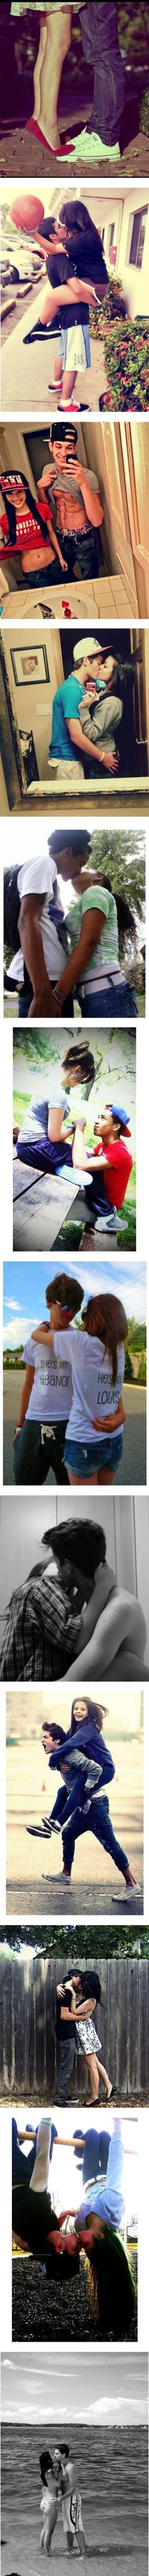 """Le Cute Couples 3"" by hes-to-purdy-for-you ❤ liked on Polyvore"